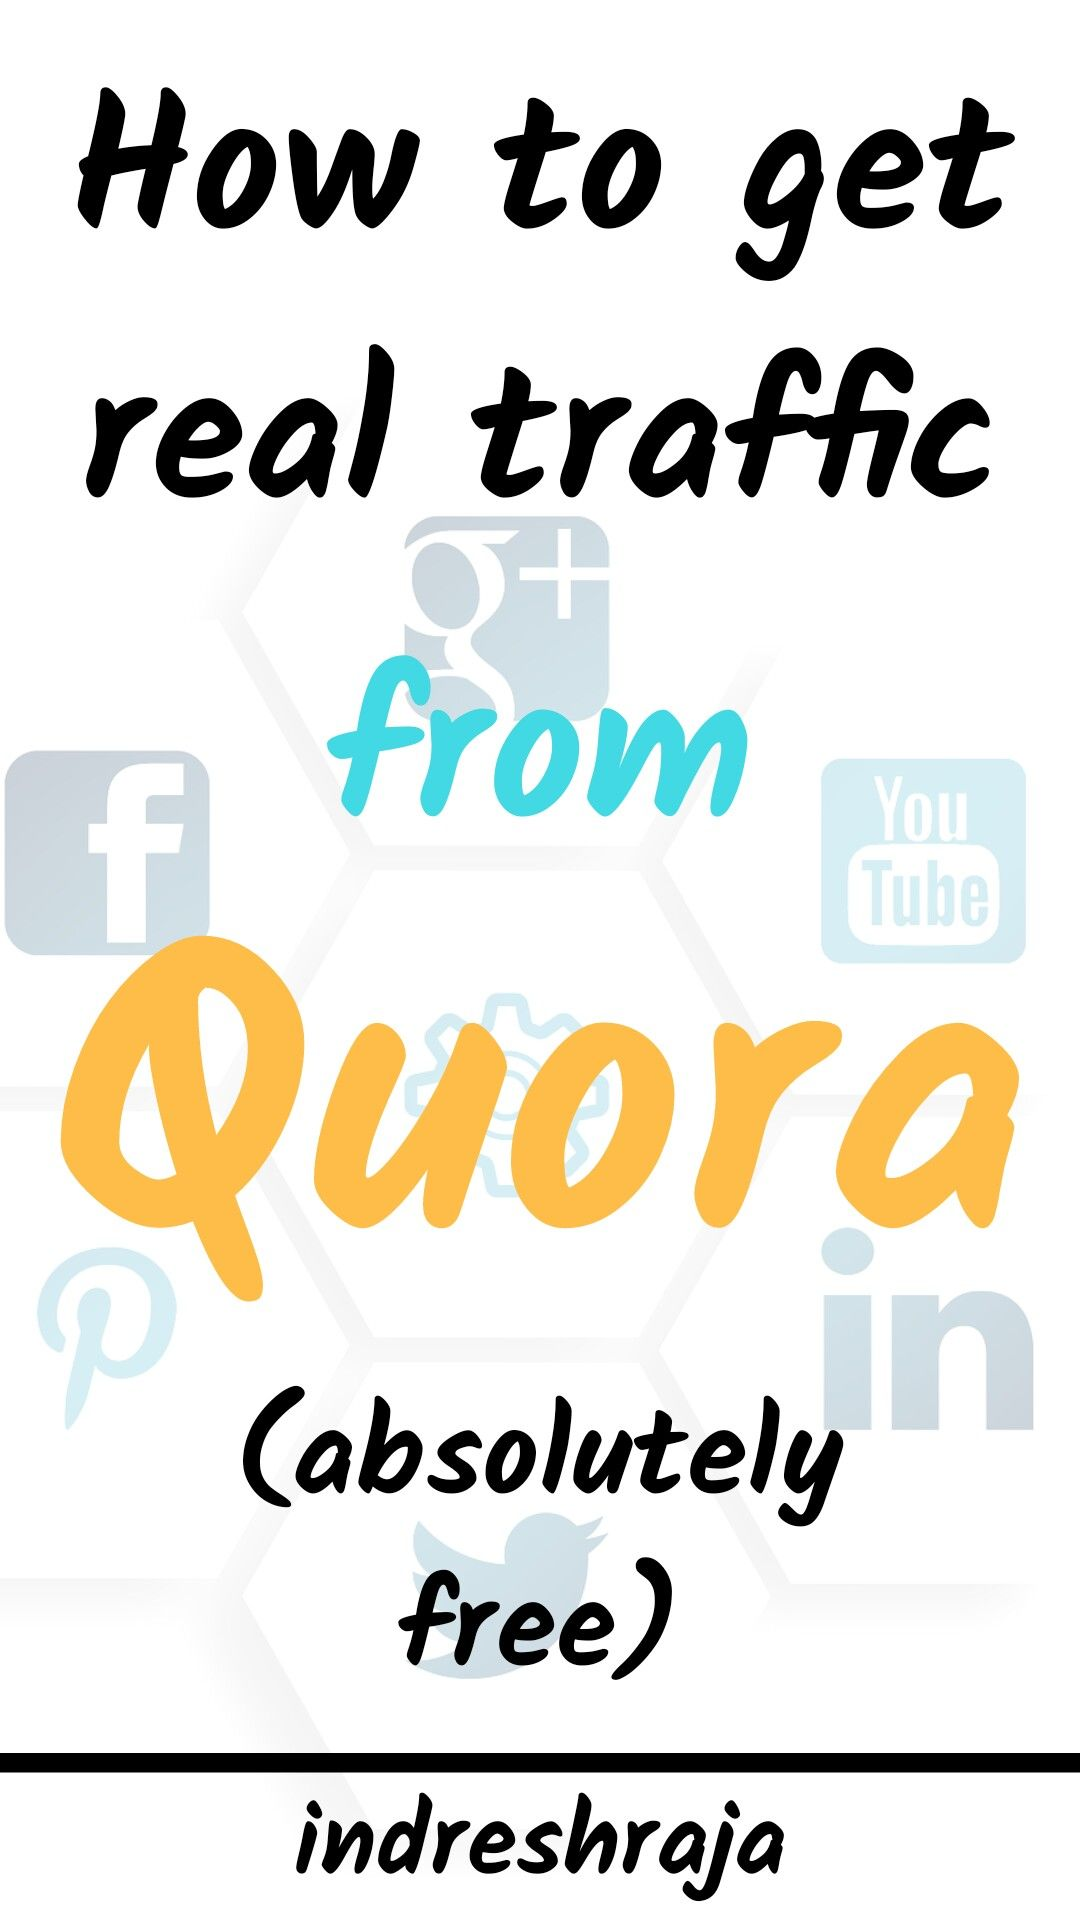 How To Get Free Traffic From Quora Easily For Your Blog Increase